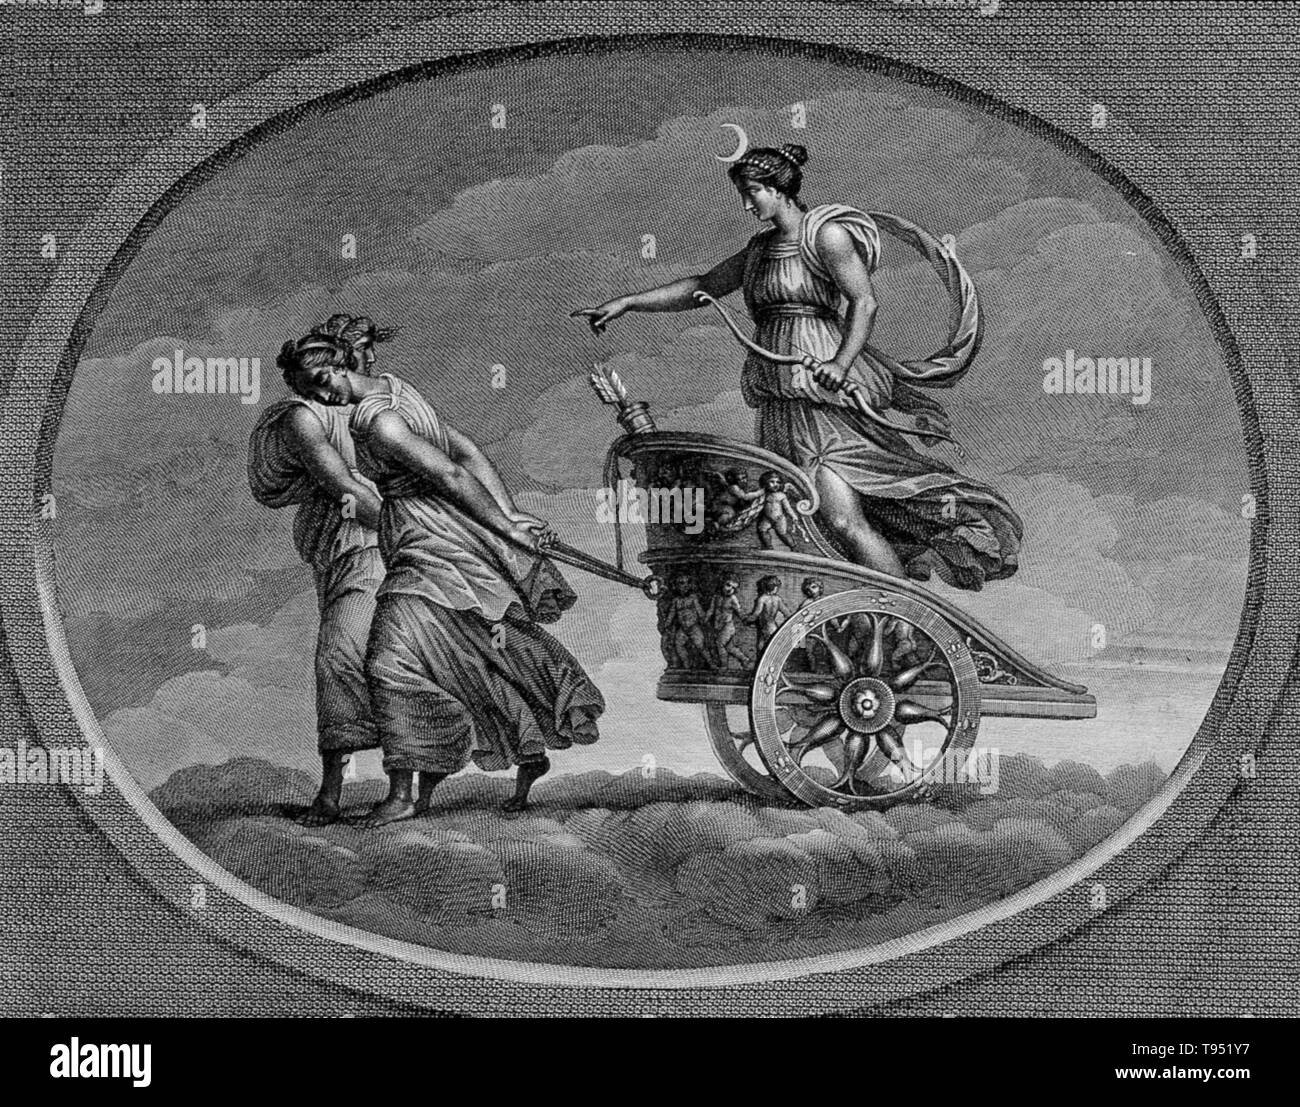 The moon, in her chariot drawn by a pair of women. In ancient Roman religion and myth, Luna is the divine embodiment of the Moon (Latin luna; cf. English 'lunar'). She is often presented as the female complement of the Sun (Sol) conceived of as a god. Luna is also sometimes represented as an aspect of the Roman triple goddess (diva triformis ), along with Proserpina and Hecate. Luna is not always a distinct goddess, but sometimes rather an epithet that specializes a goddess, since both Diana and Juno are identified as moon goddesses. In Roman art, Luna's attributes are the crescent moon plus t - Stock Image